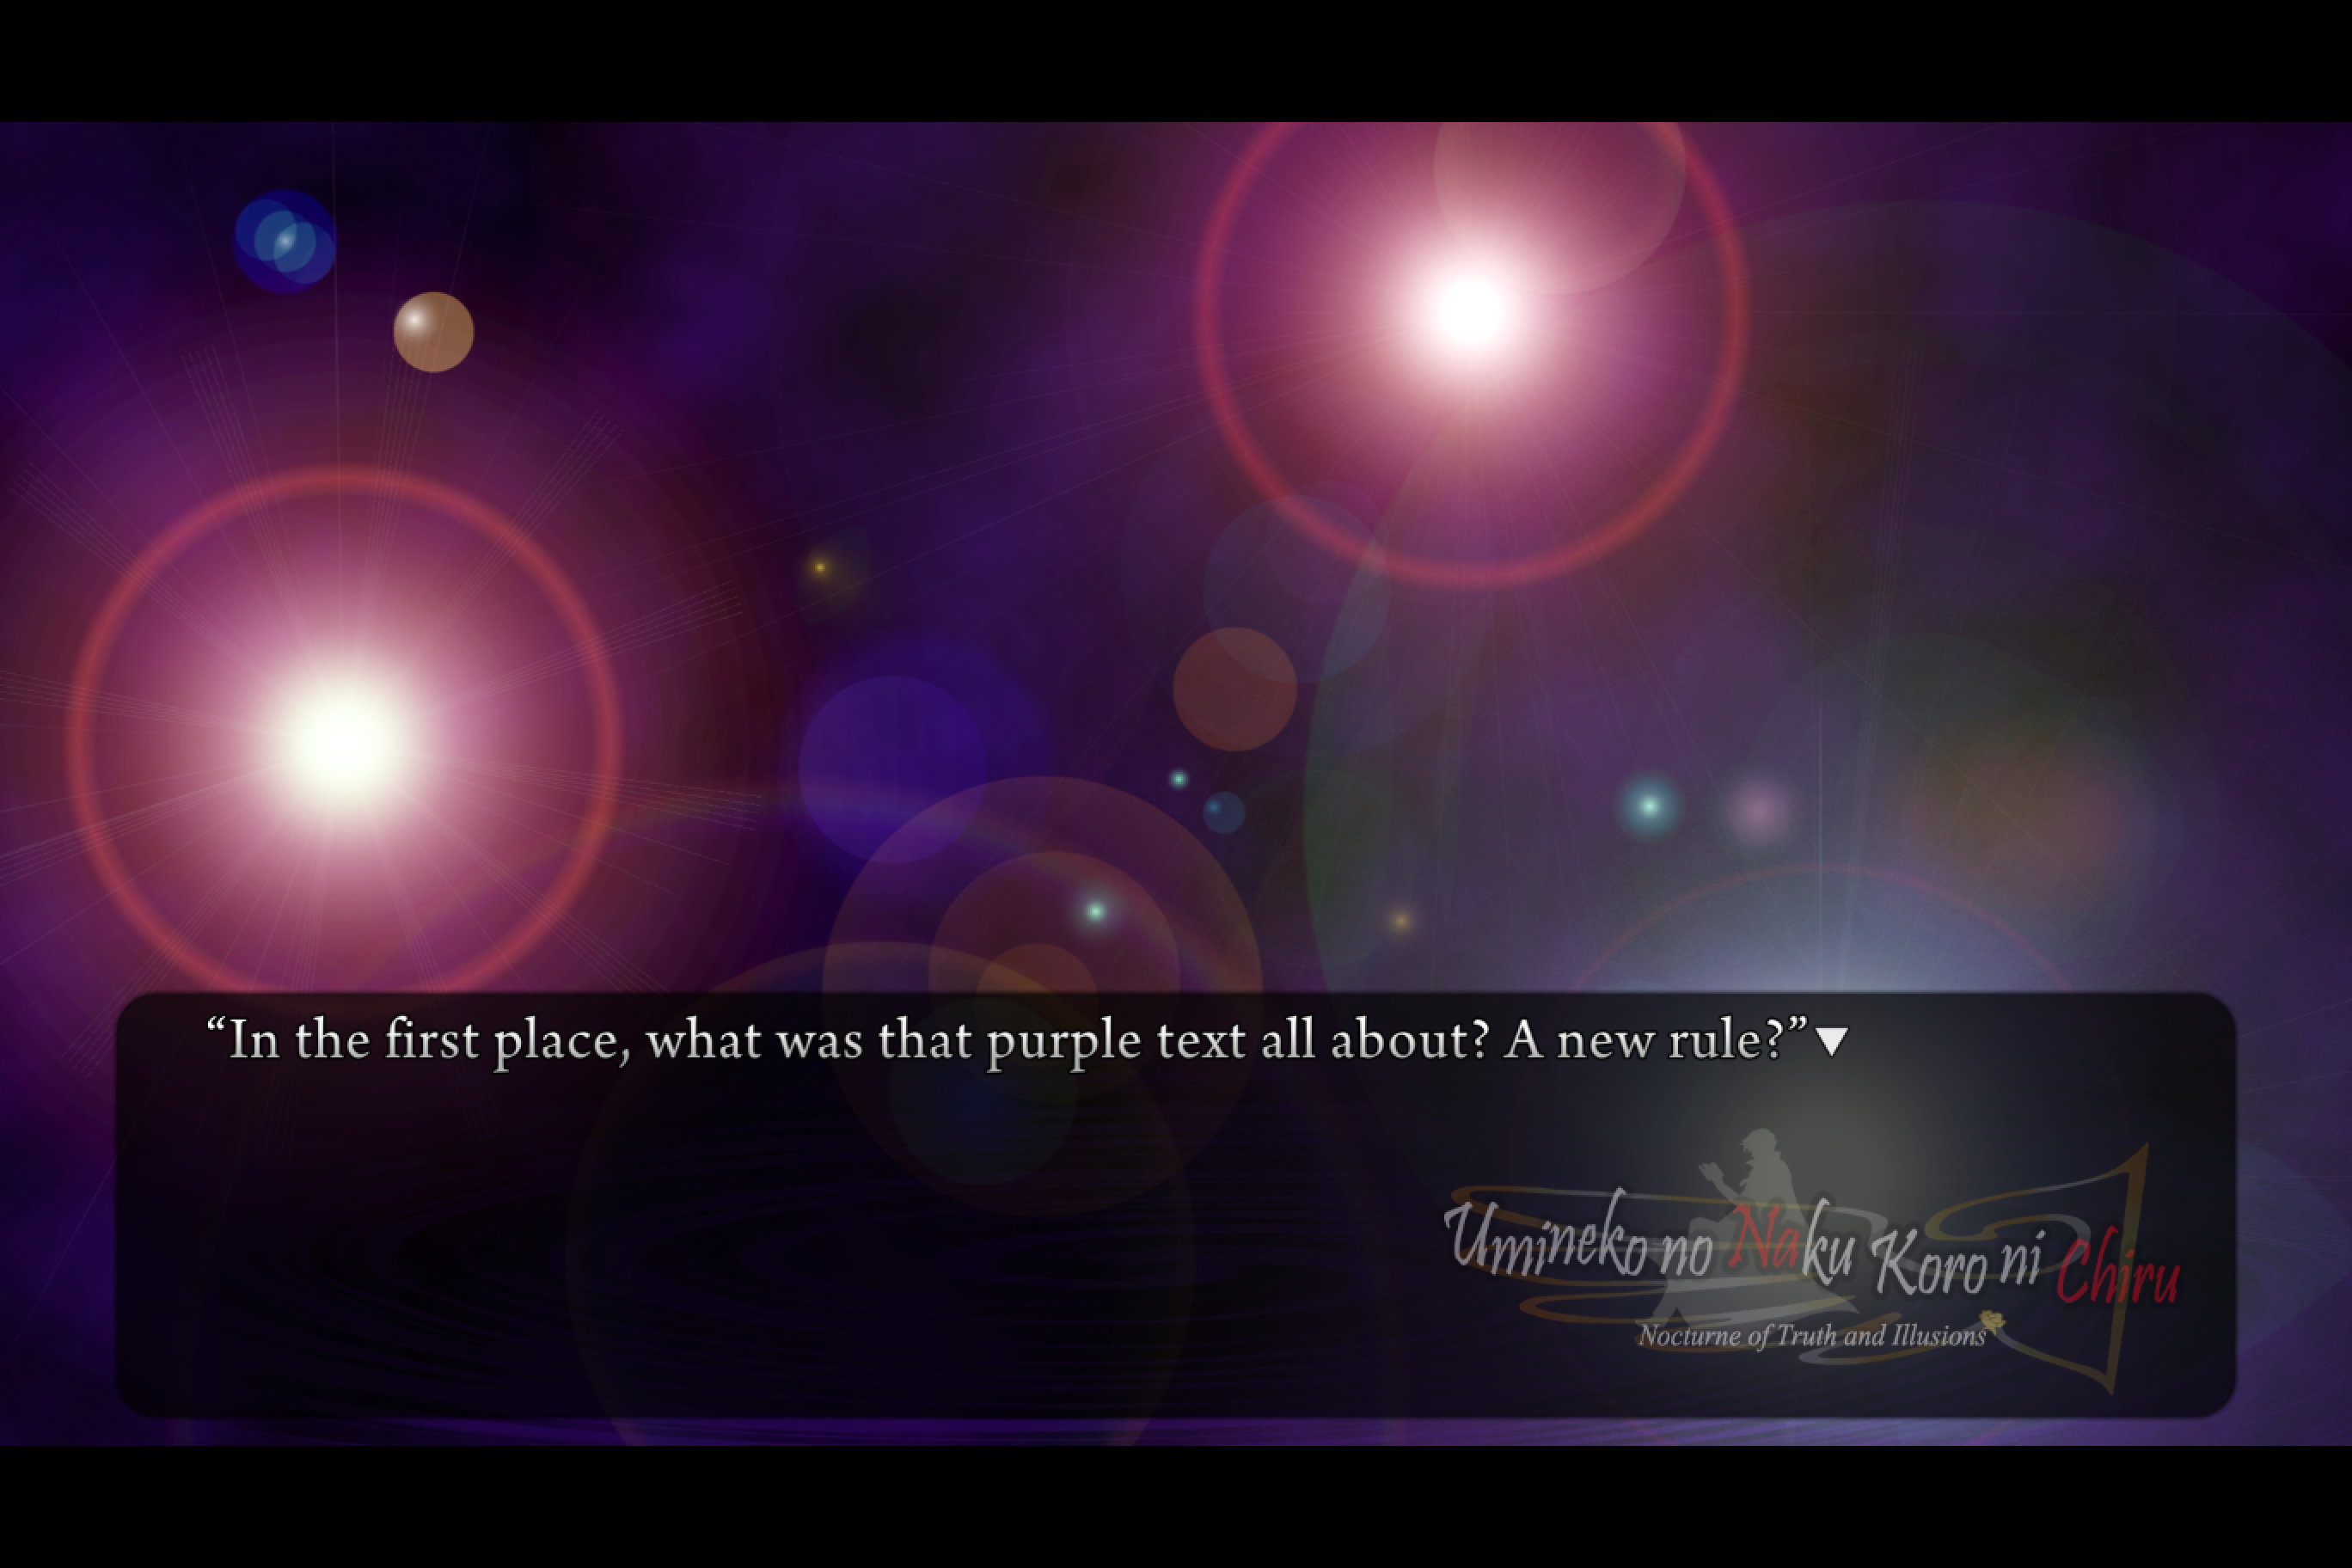 Umineko no Naku Koro ni Chiru ~Nocturne of Truth and Illusions~ (8.2a) 6_1_2020 11_45_16 PM.png